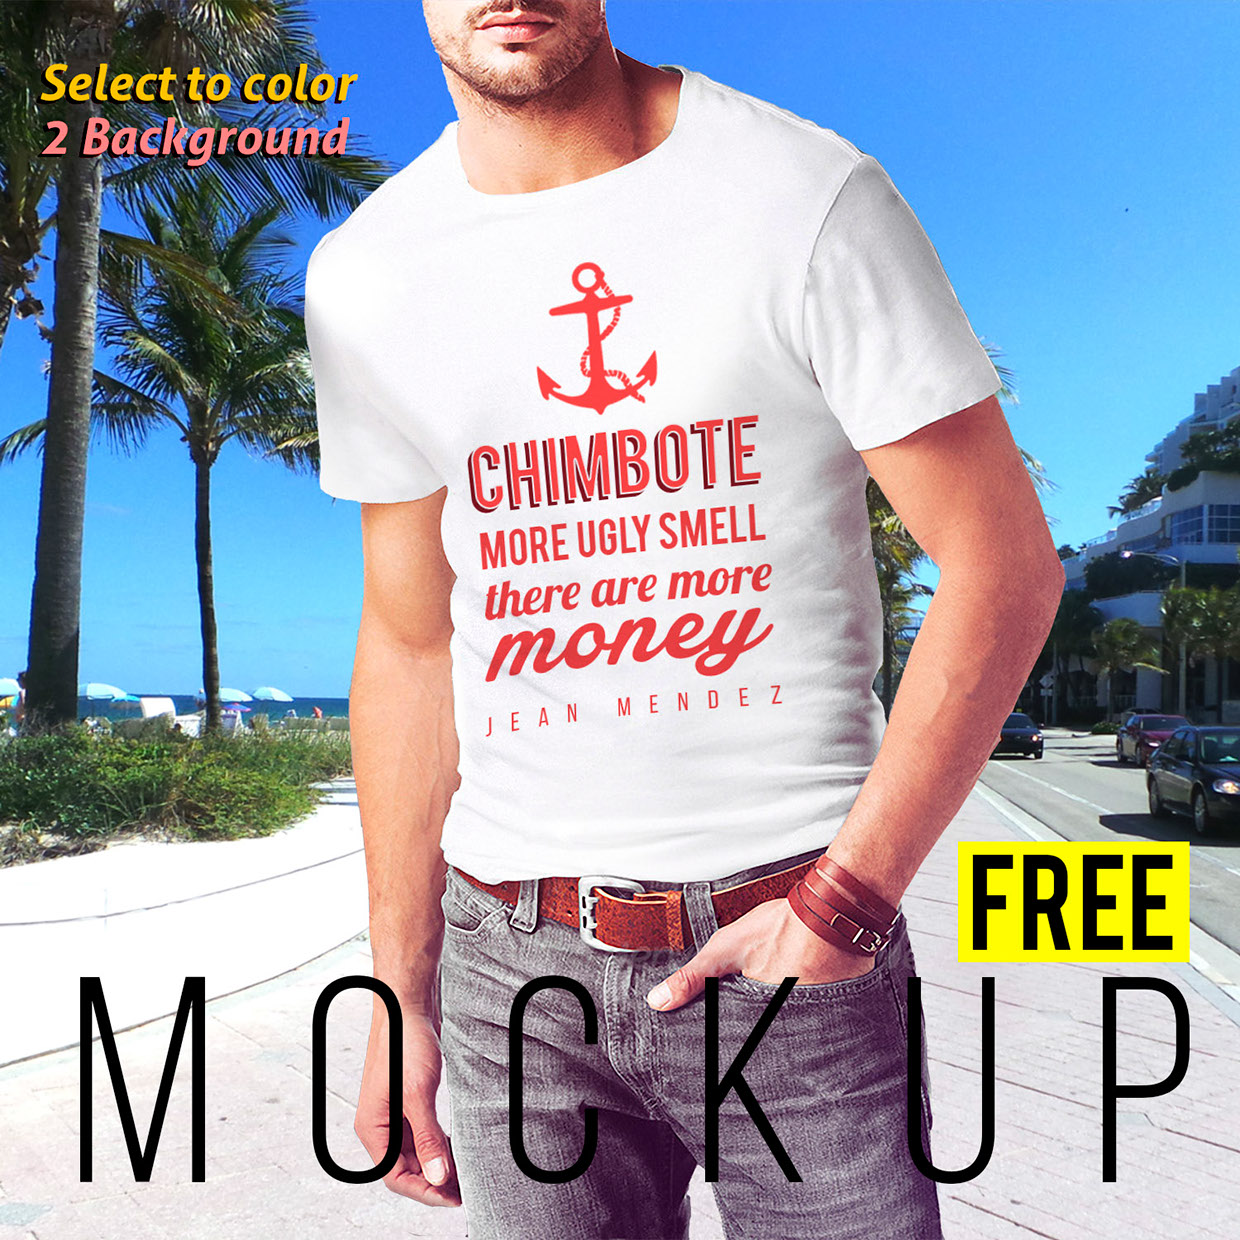 T-shirt-PSD-Mockup-Free-Download